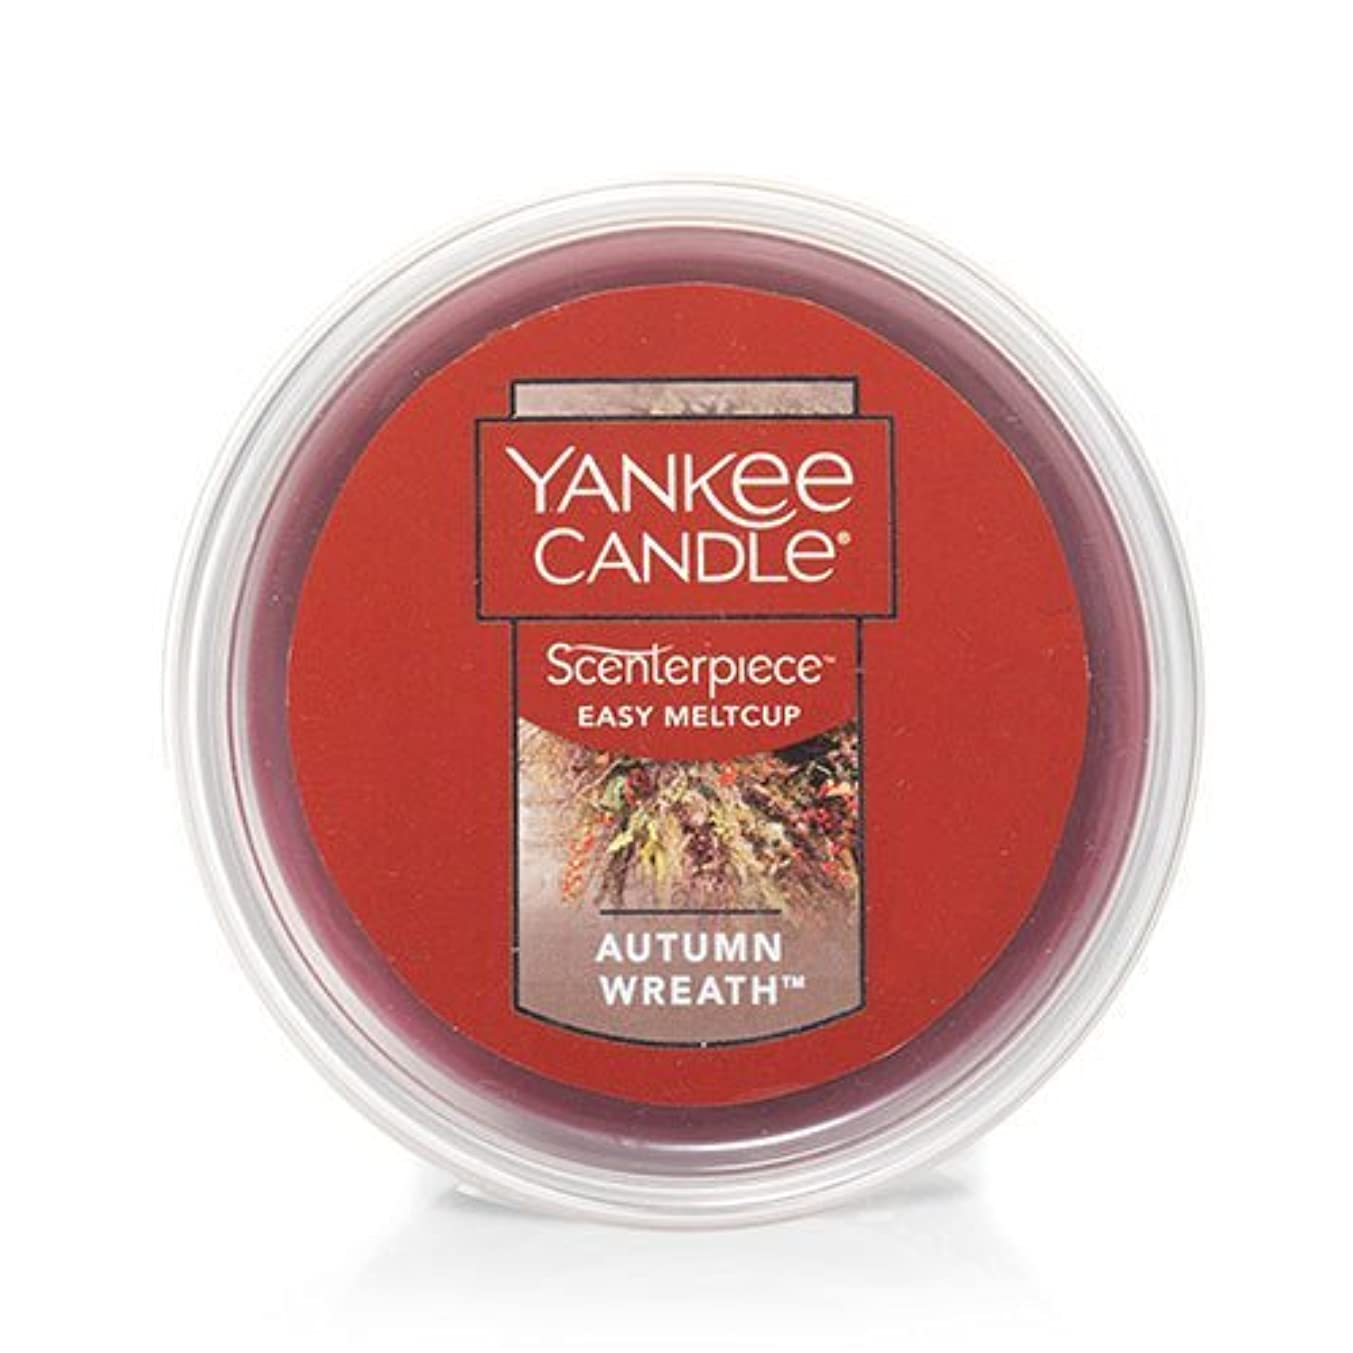 どこでも日常的に設計図Yankee Candle Autumn Wreath Scenterpiece Easy MeltCup , Food & Spice香り2.2 Oz